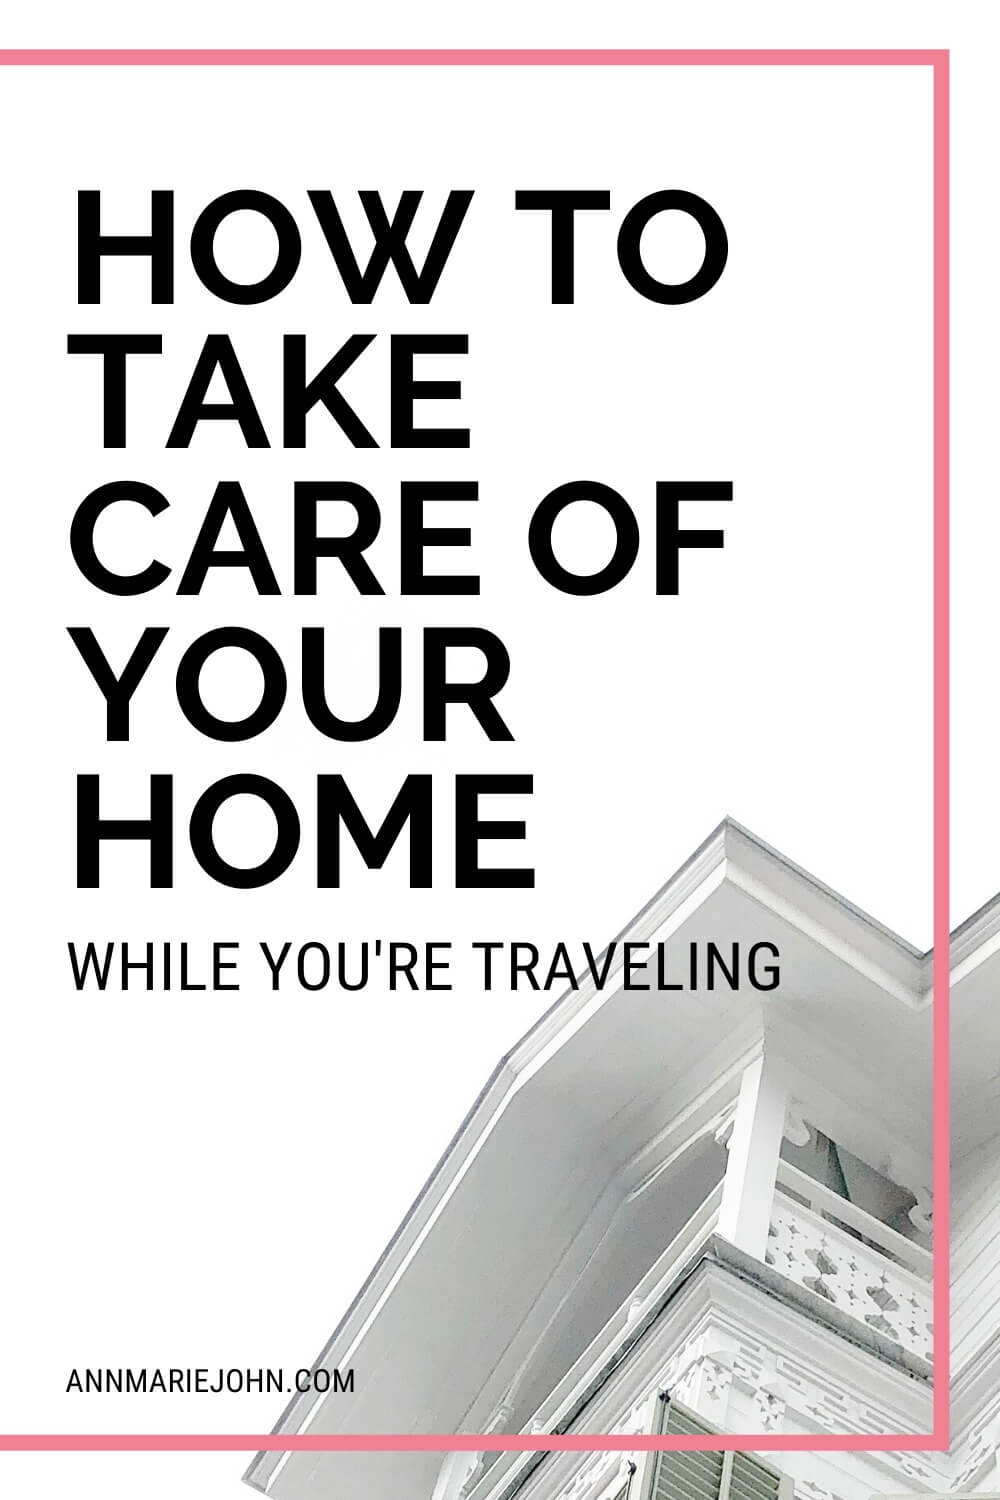 How To Take Care Of Your Home While You're Traveling